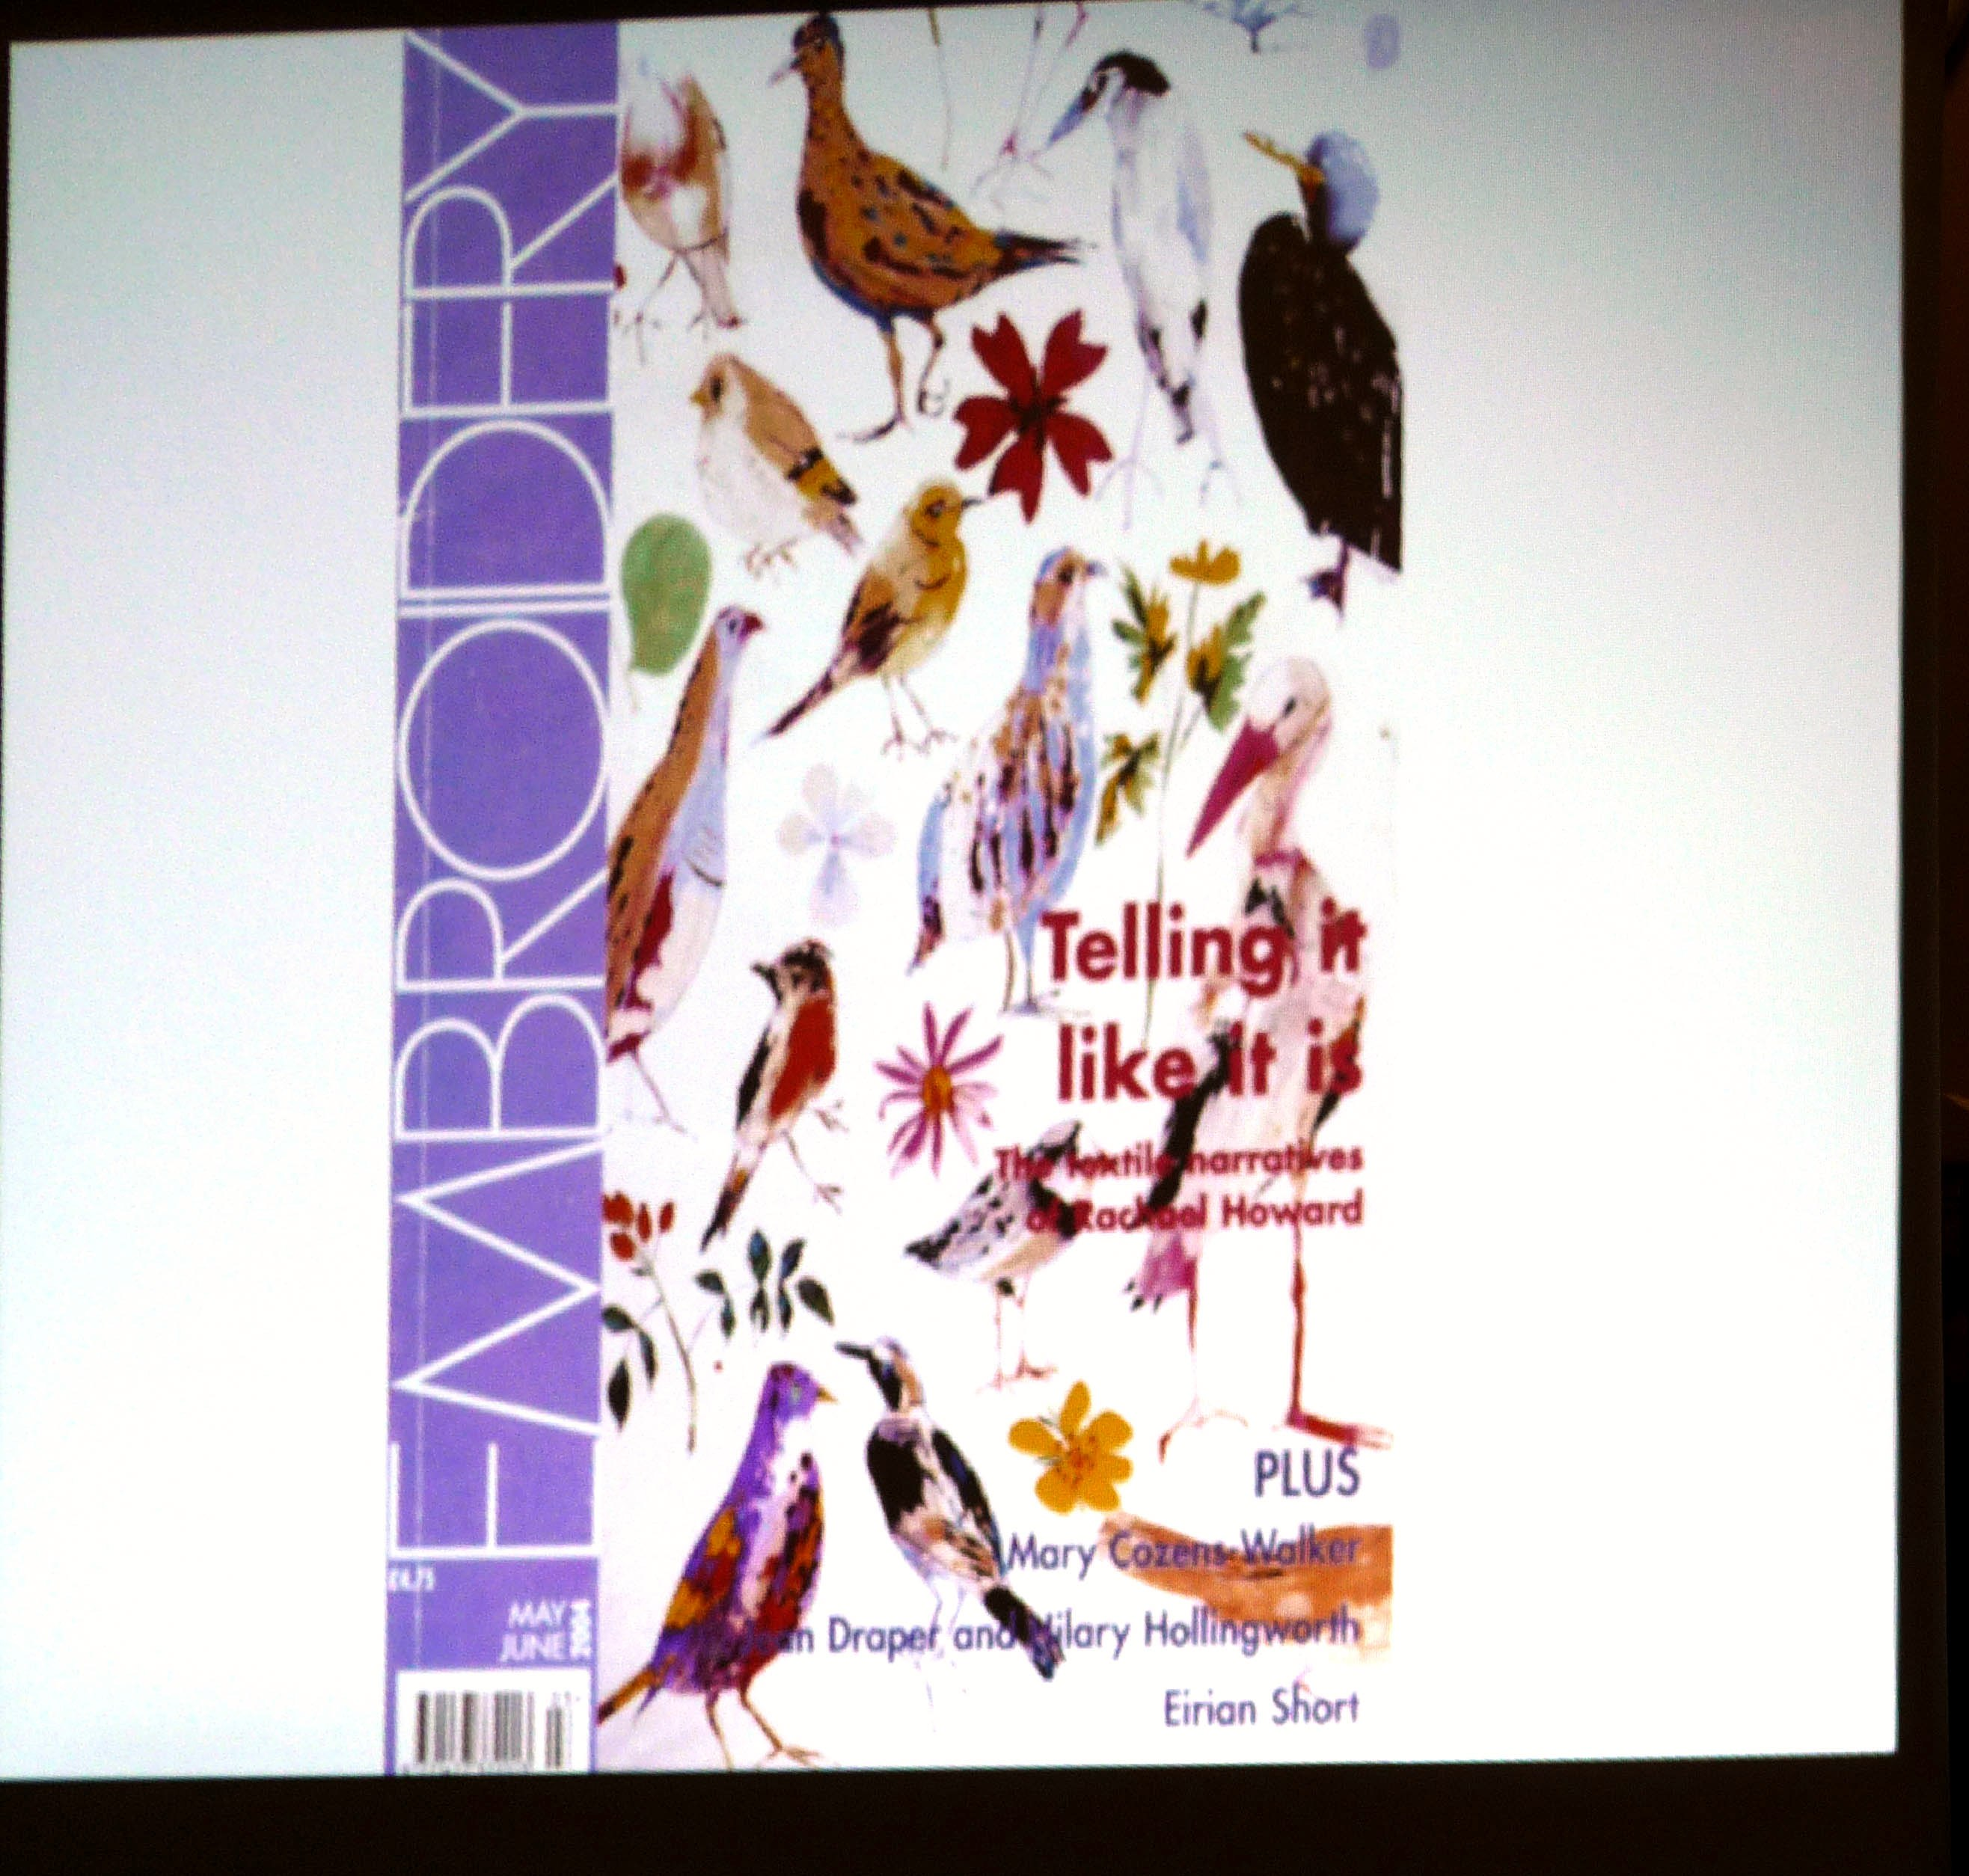 slide showing embroidery by Rachael Howard on a magazine cover